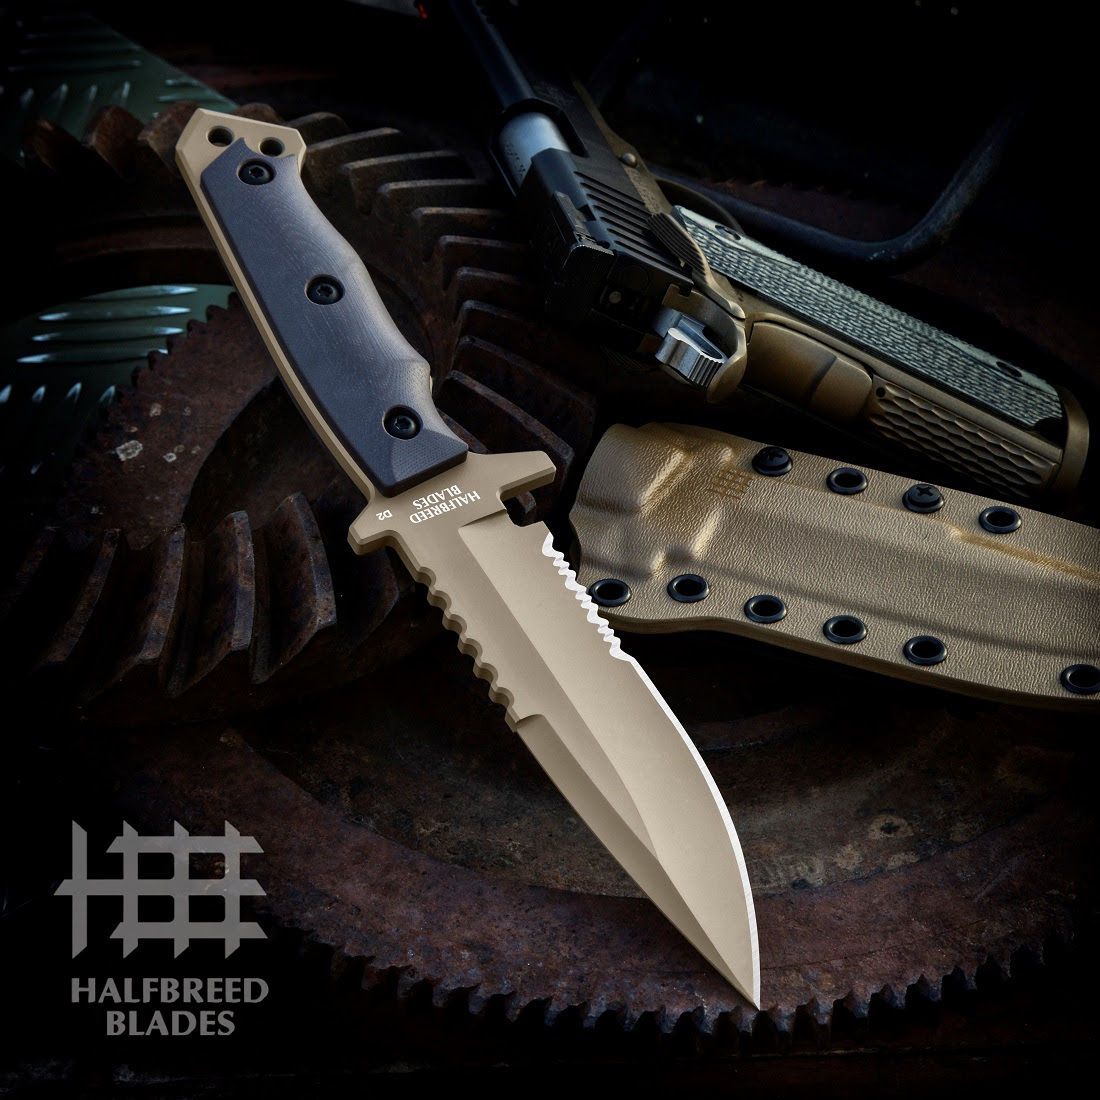 Introducing the MIK-03 Medium Infantry Knife from Halfbreed Blades